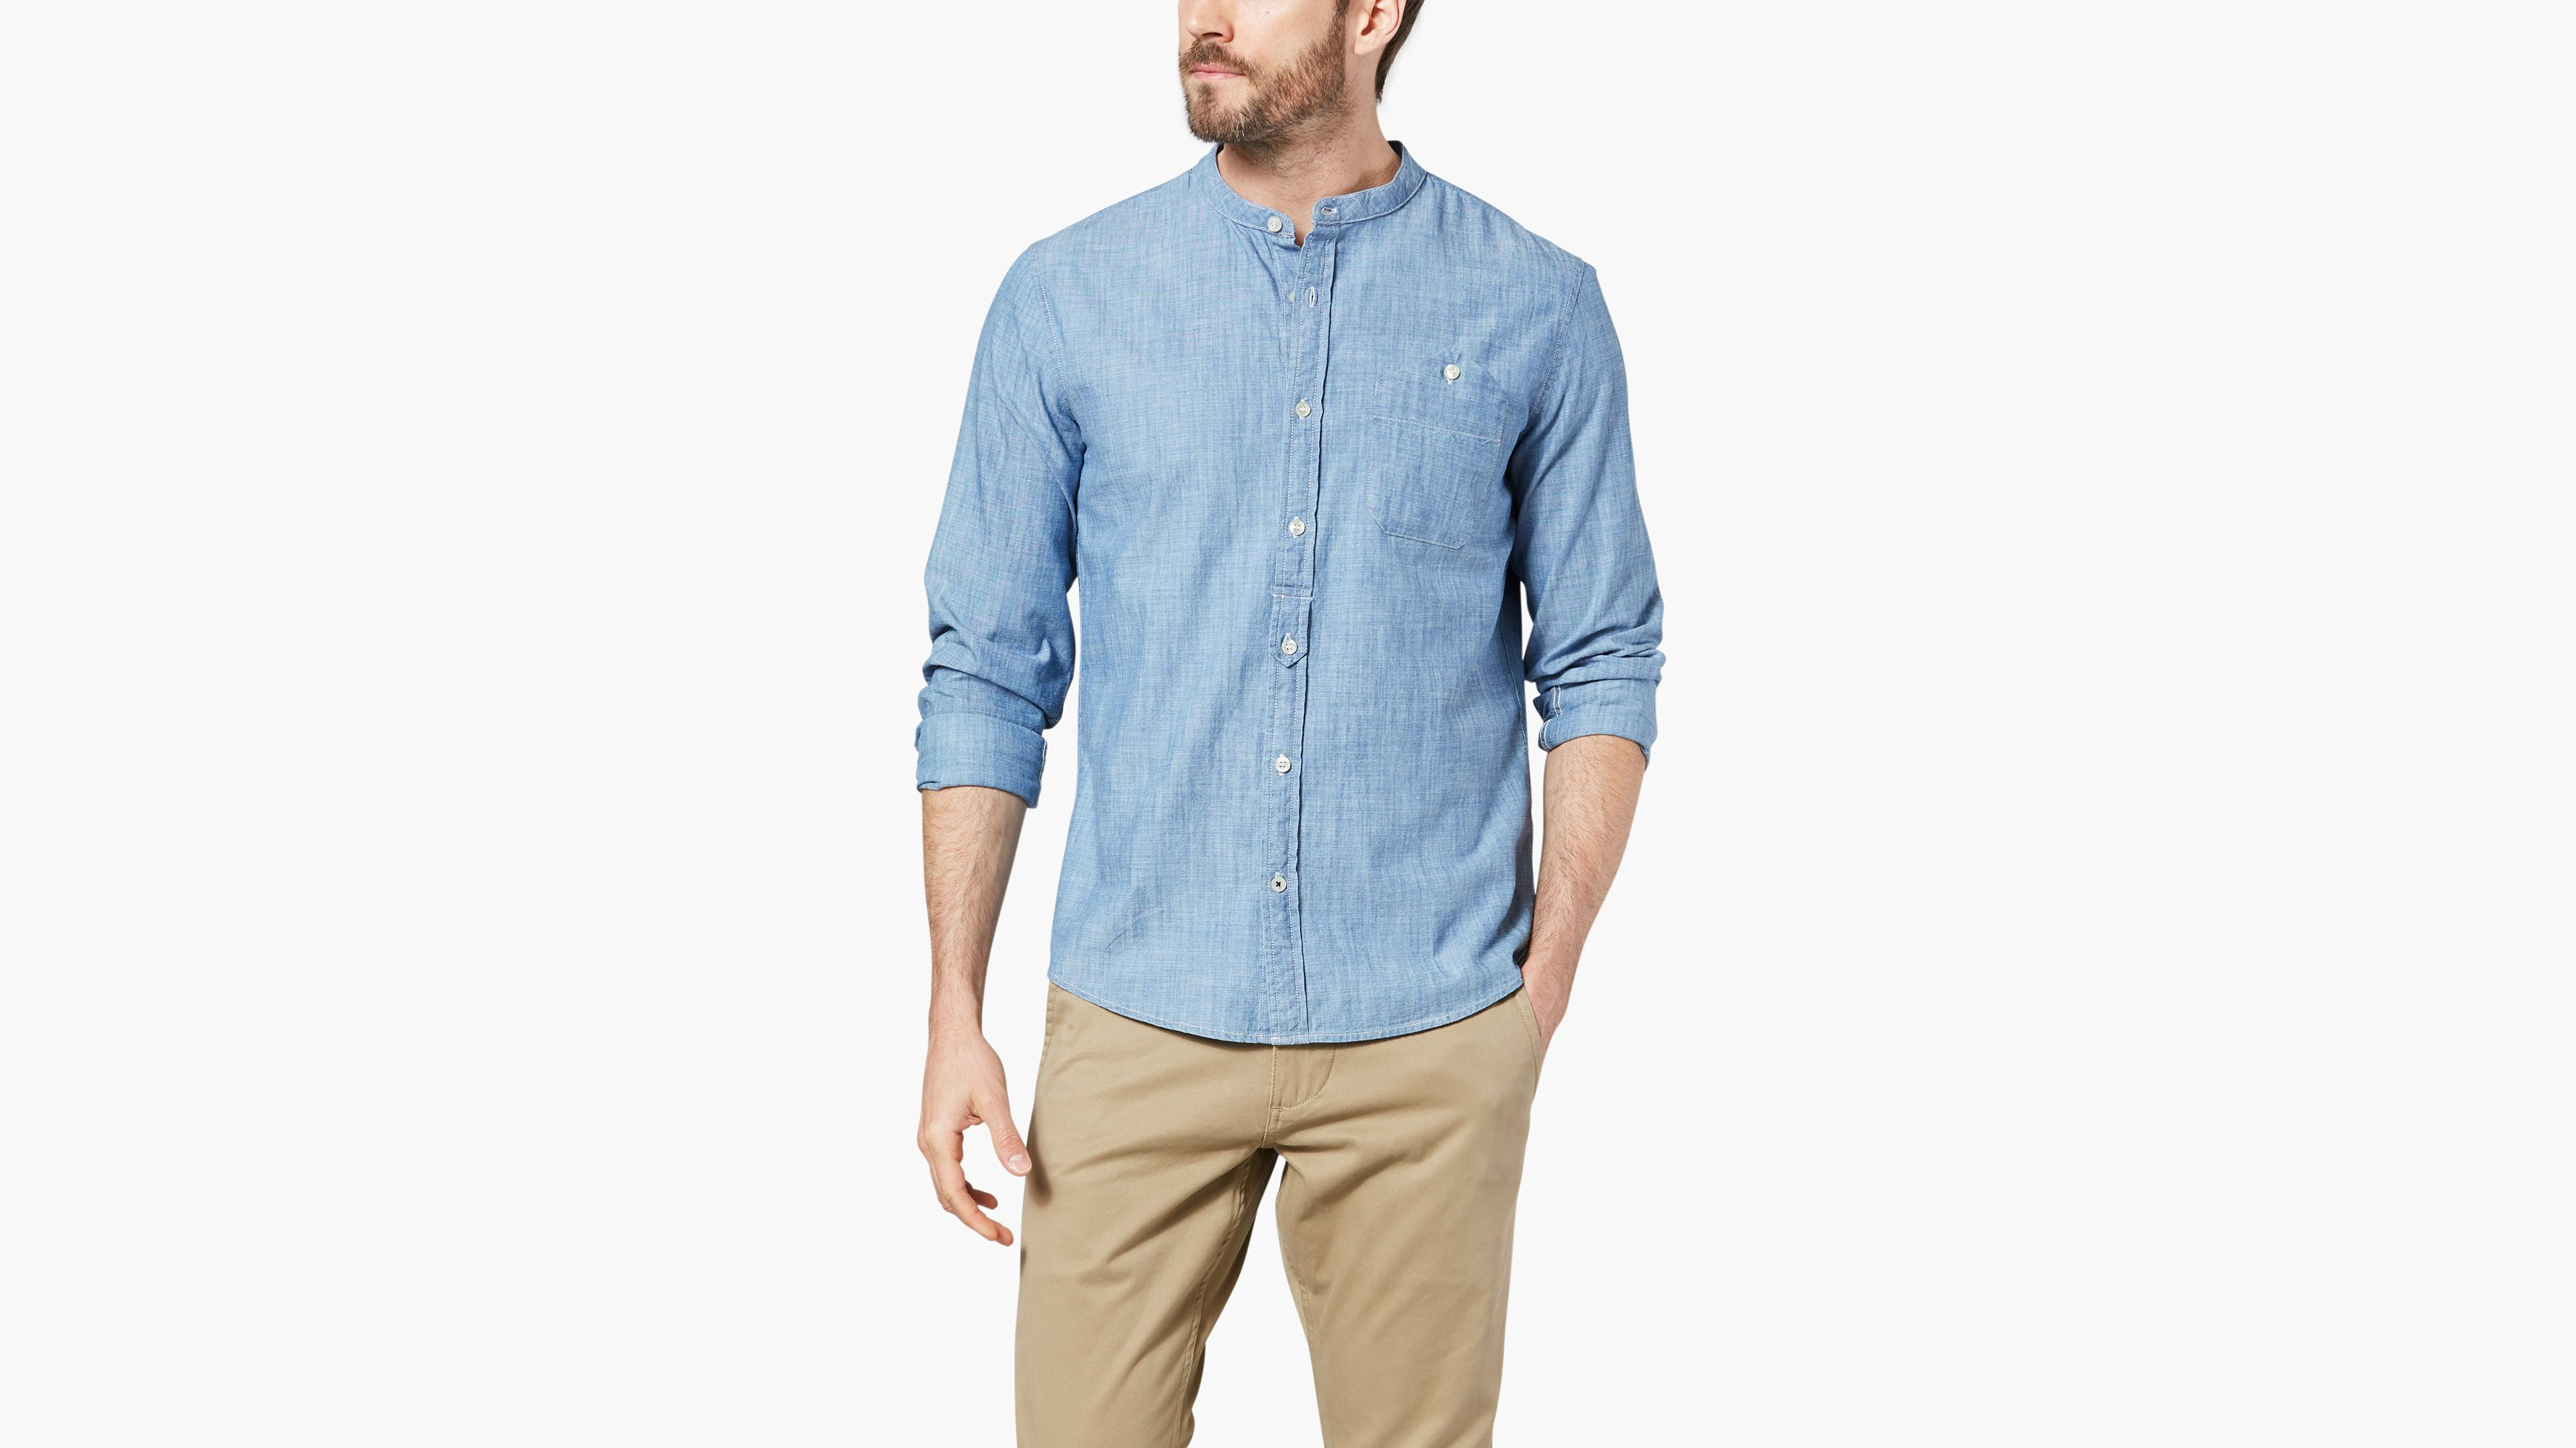 0bd753cfc042bc Dockers® Alpha Band Collar Button-up Shirt, Slim Fit - Blue 569390003 |  Dockers® US